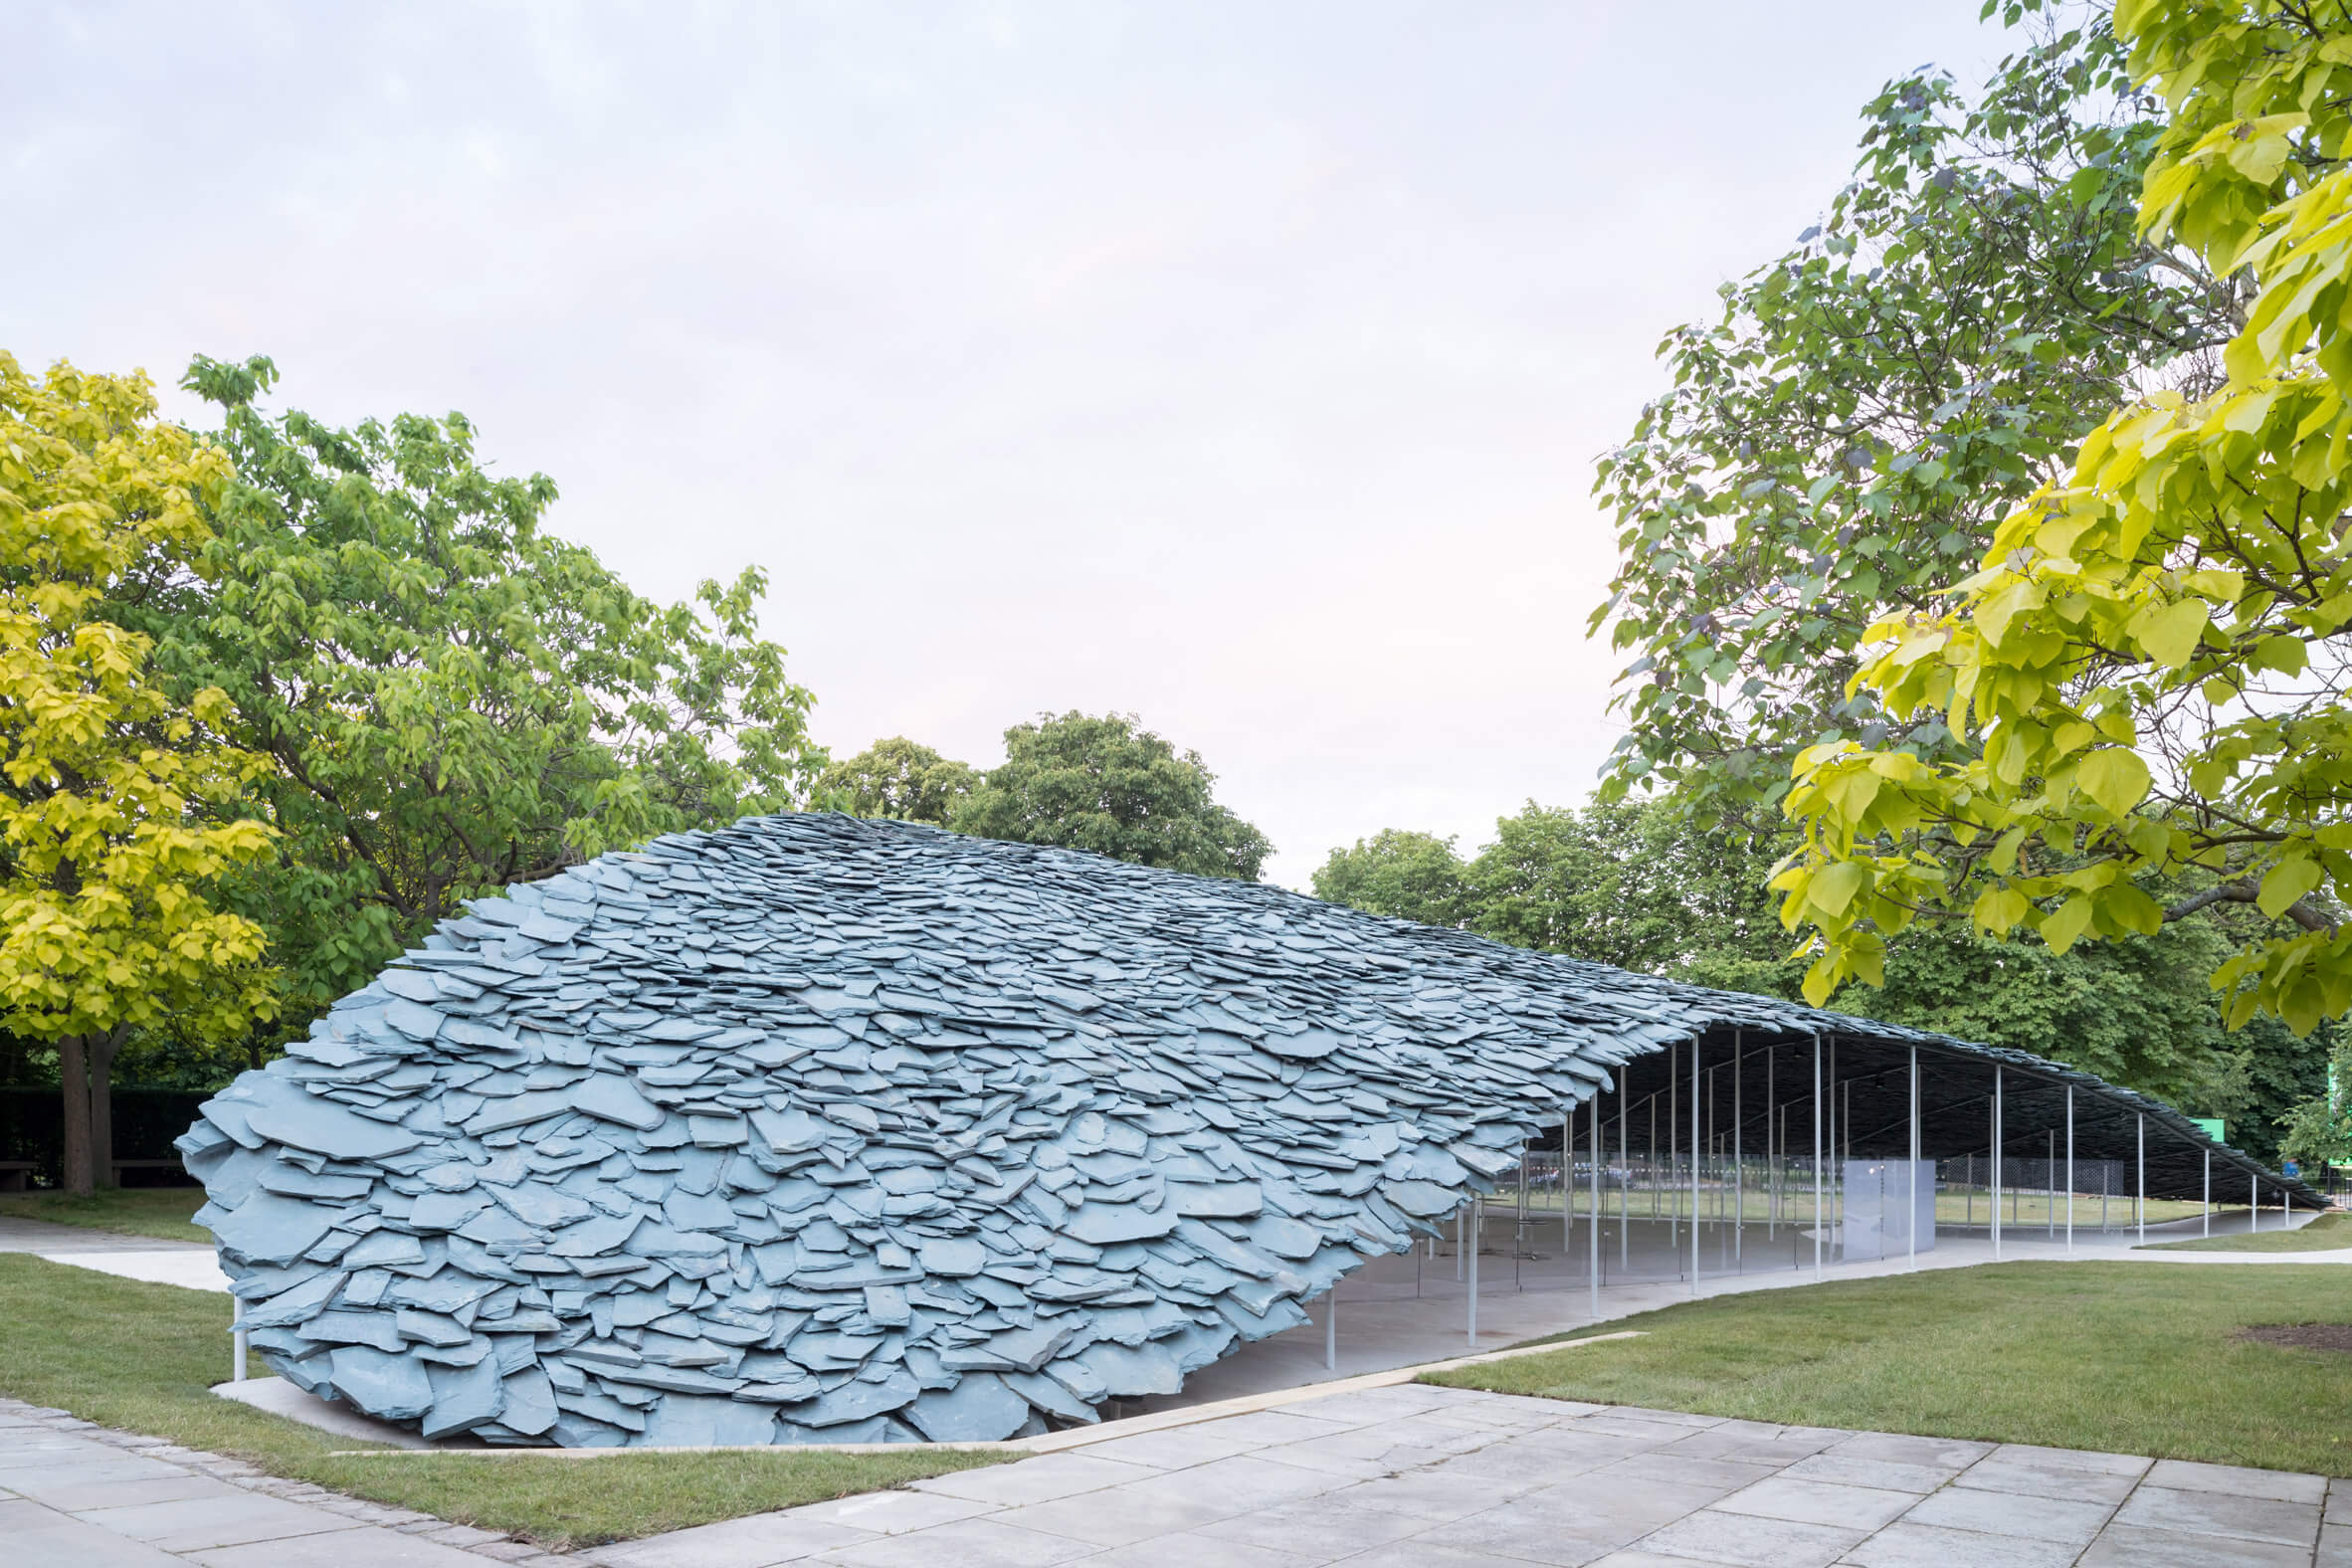 Serpentine Gallery in London's Kensington Gardens